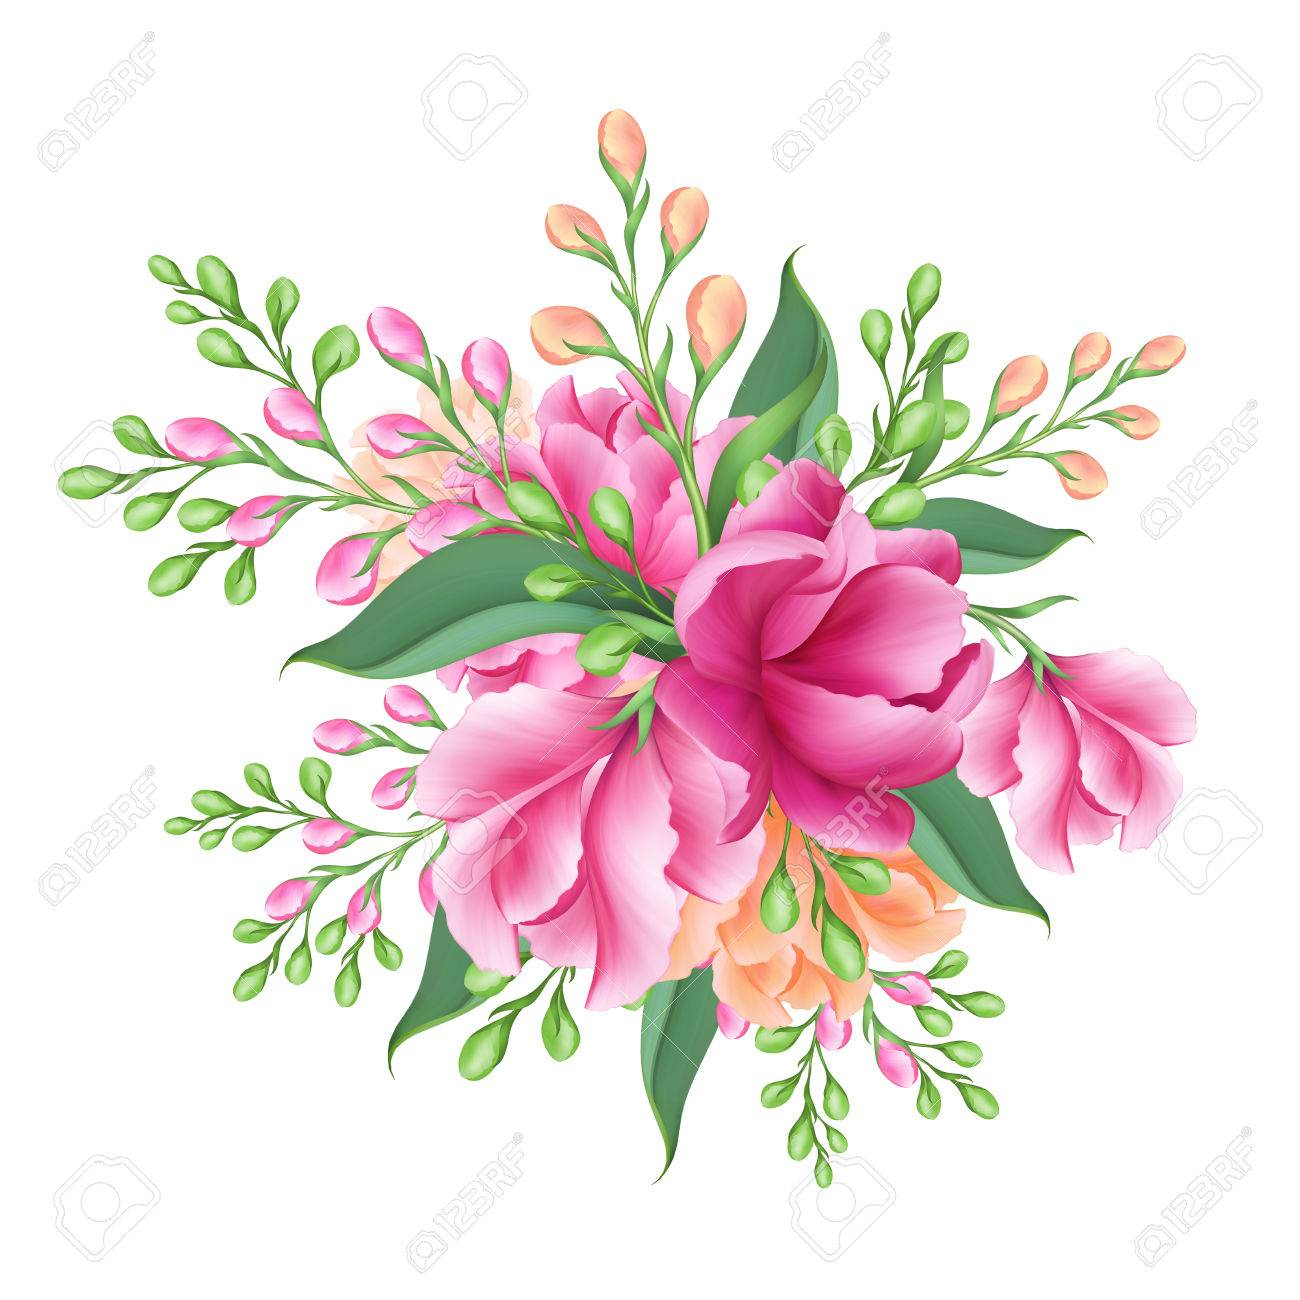 Digital Illustration Bridal Bunch Of Pink Flowers Isolated Stock